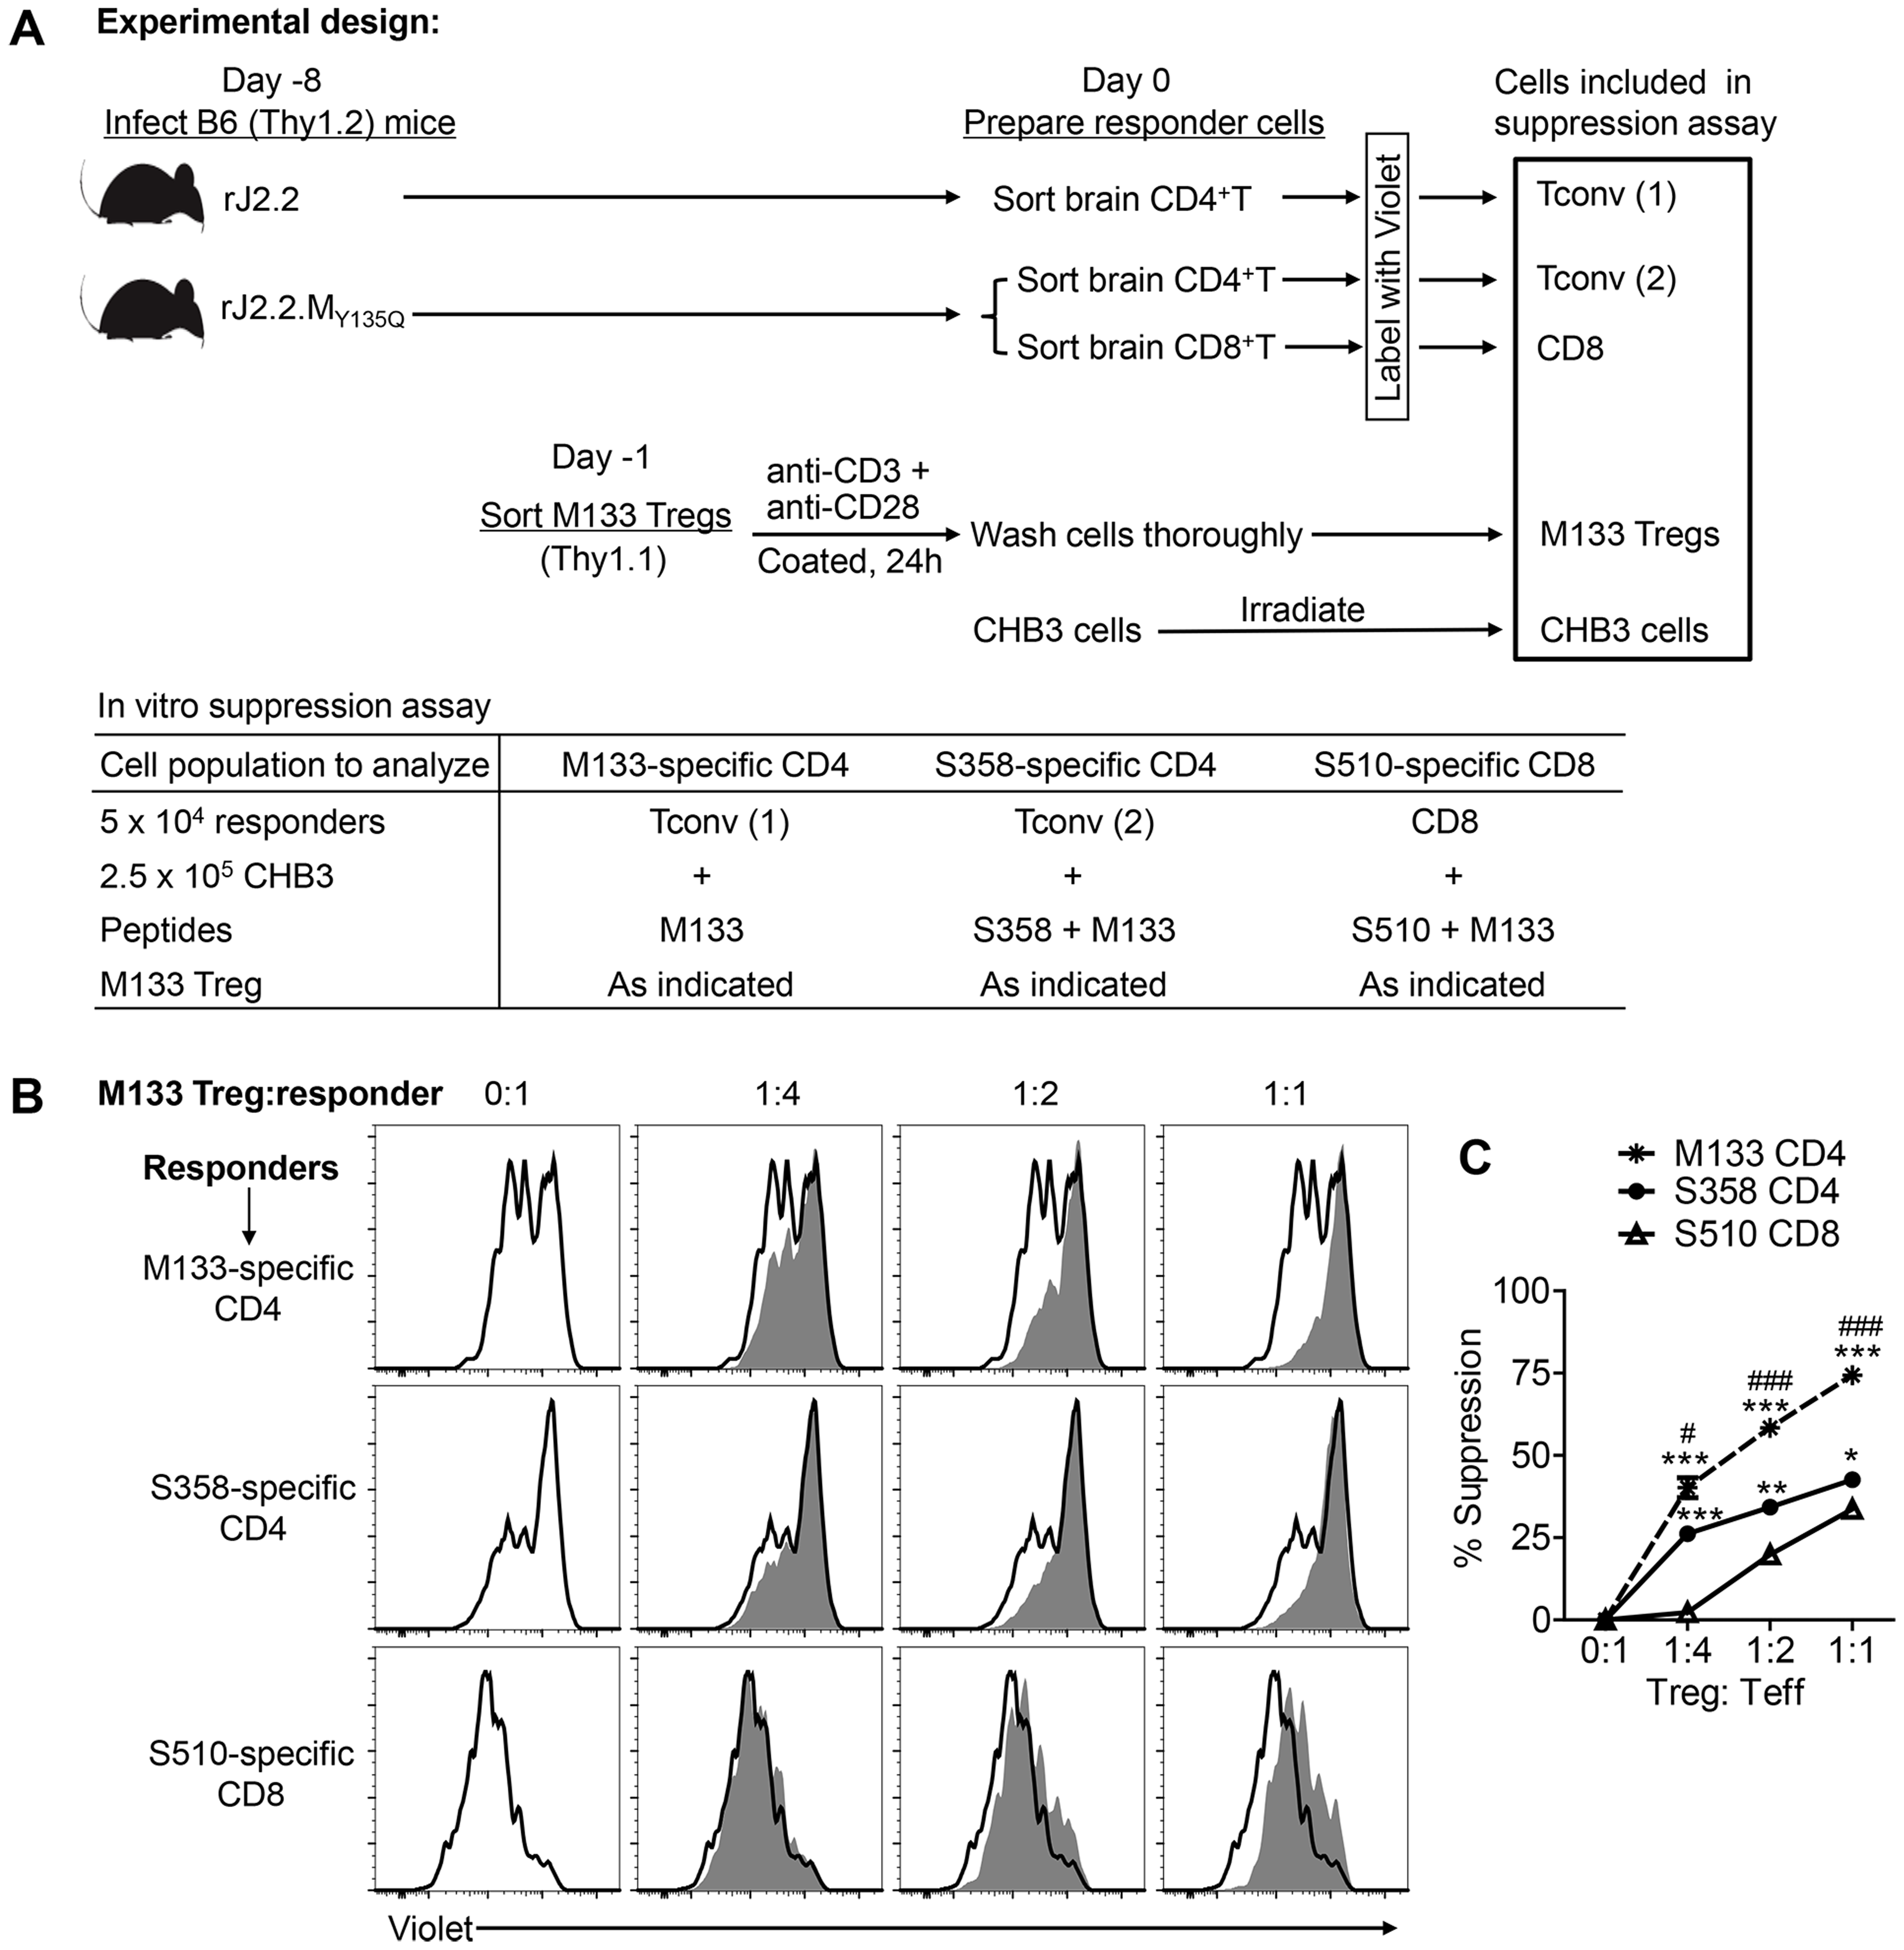 M133 Tregs preferentially inhibit proliferation of M133-specific Tconvs in an <i>in vitro</i> suppression assay.